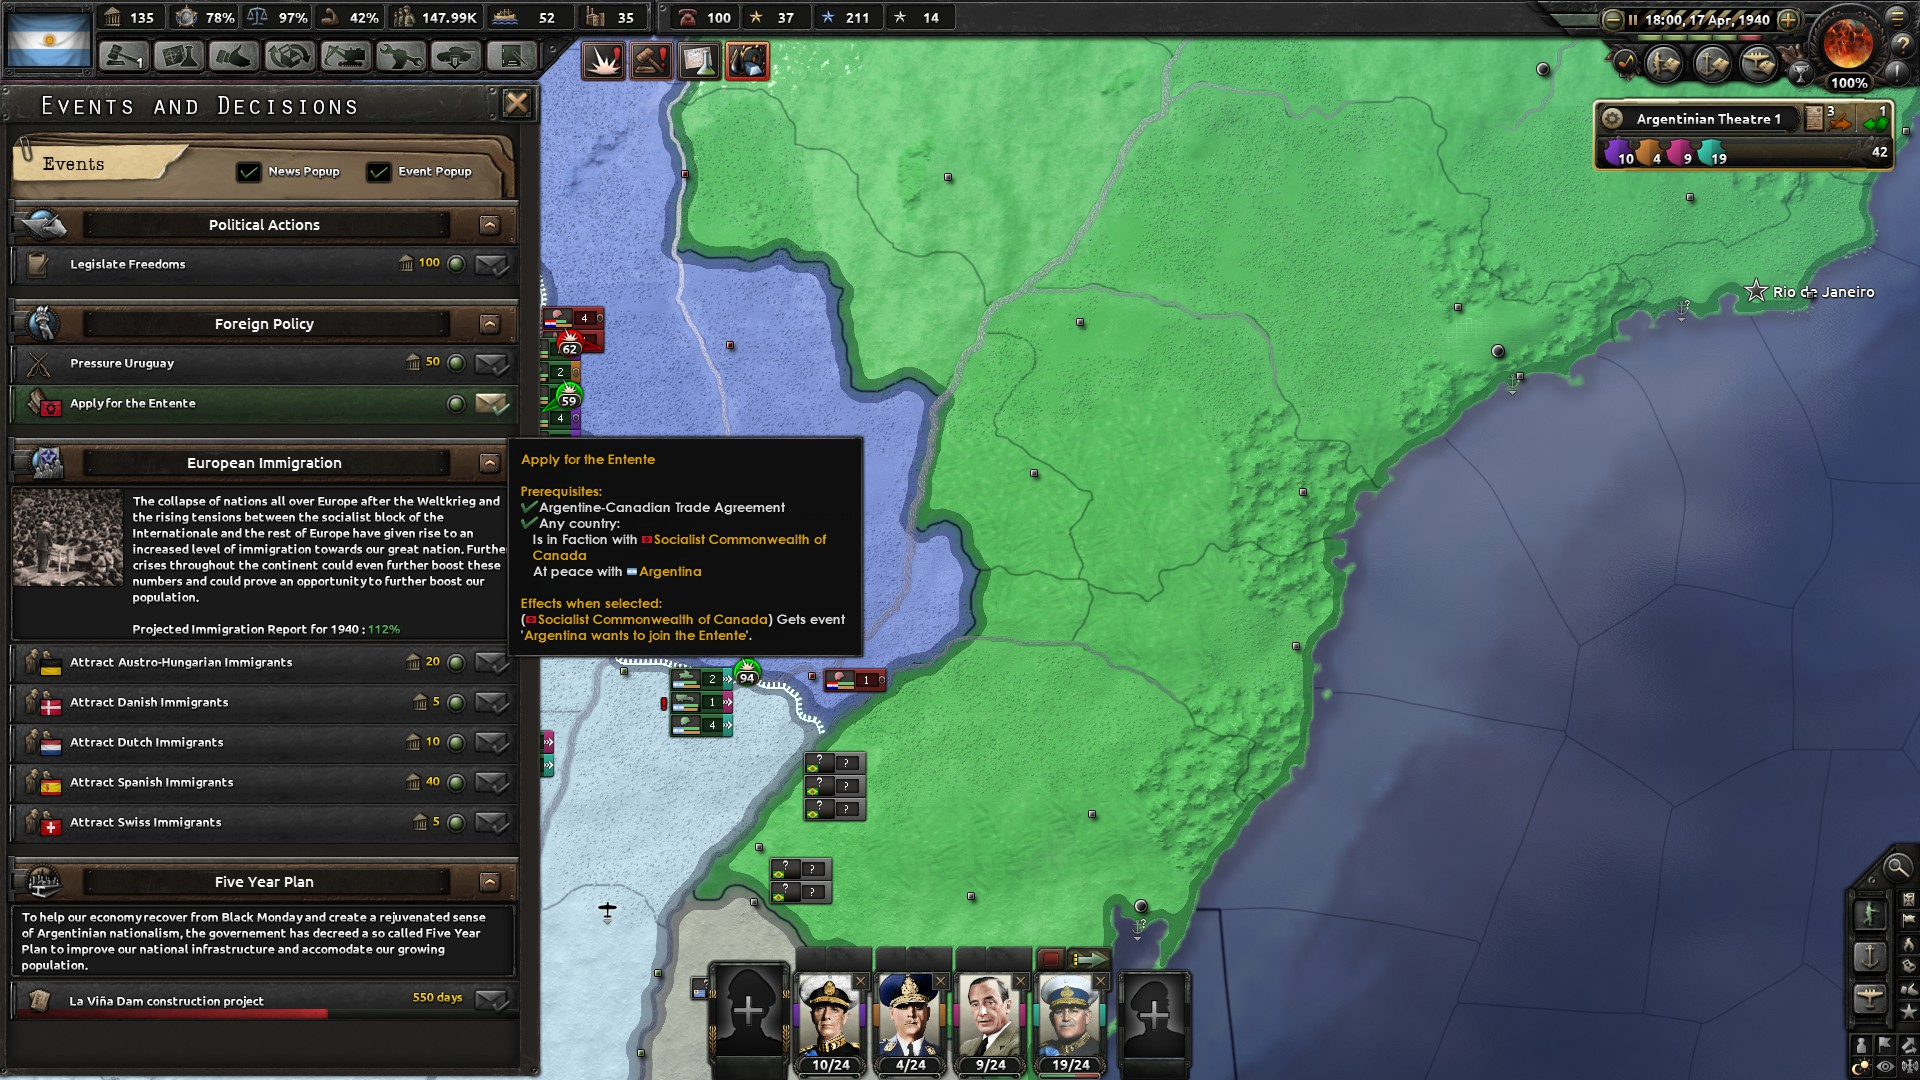 Argentina can apply to the Entente even after it does not